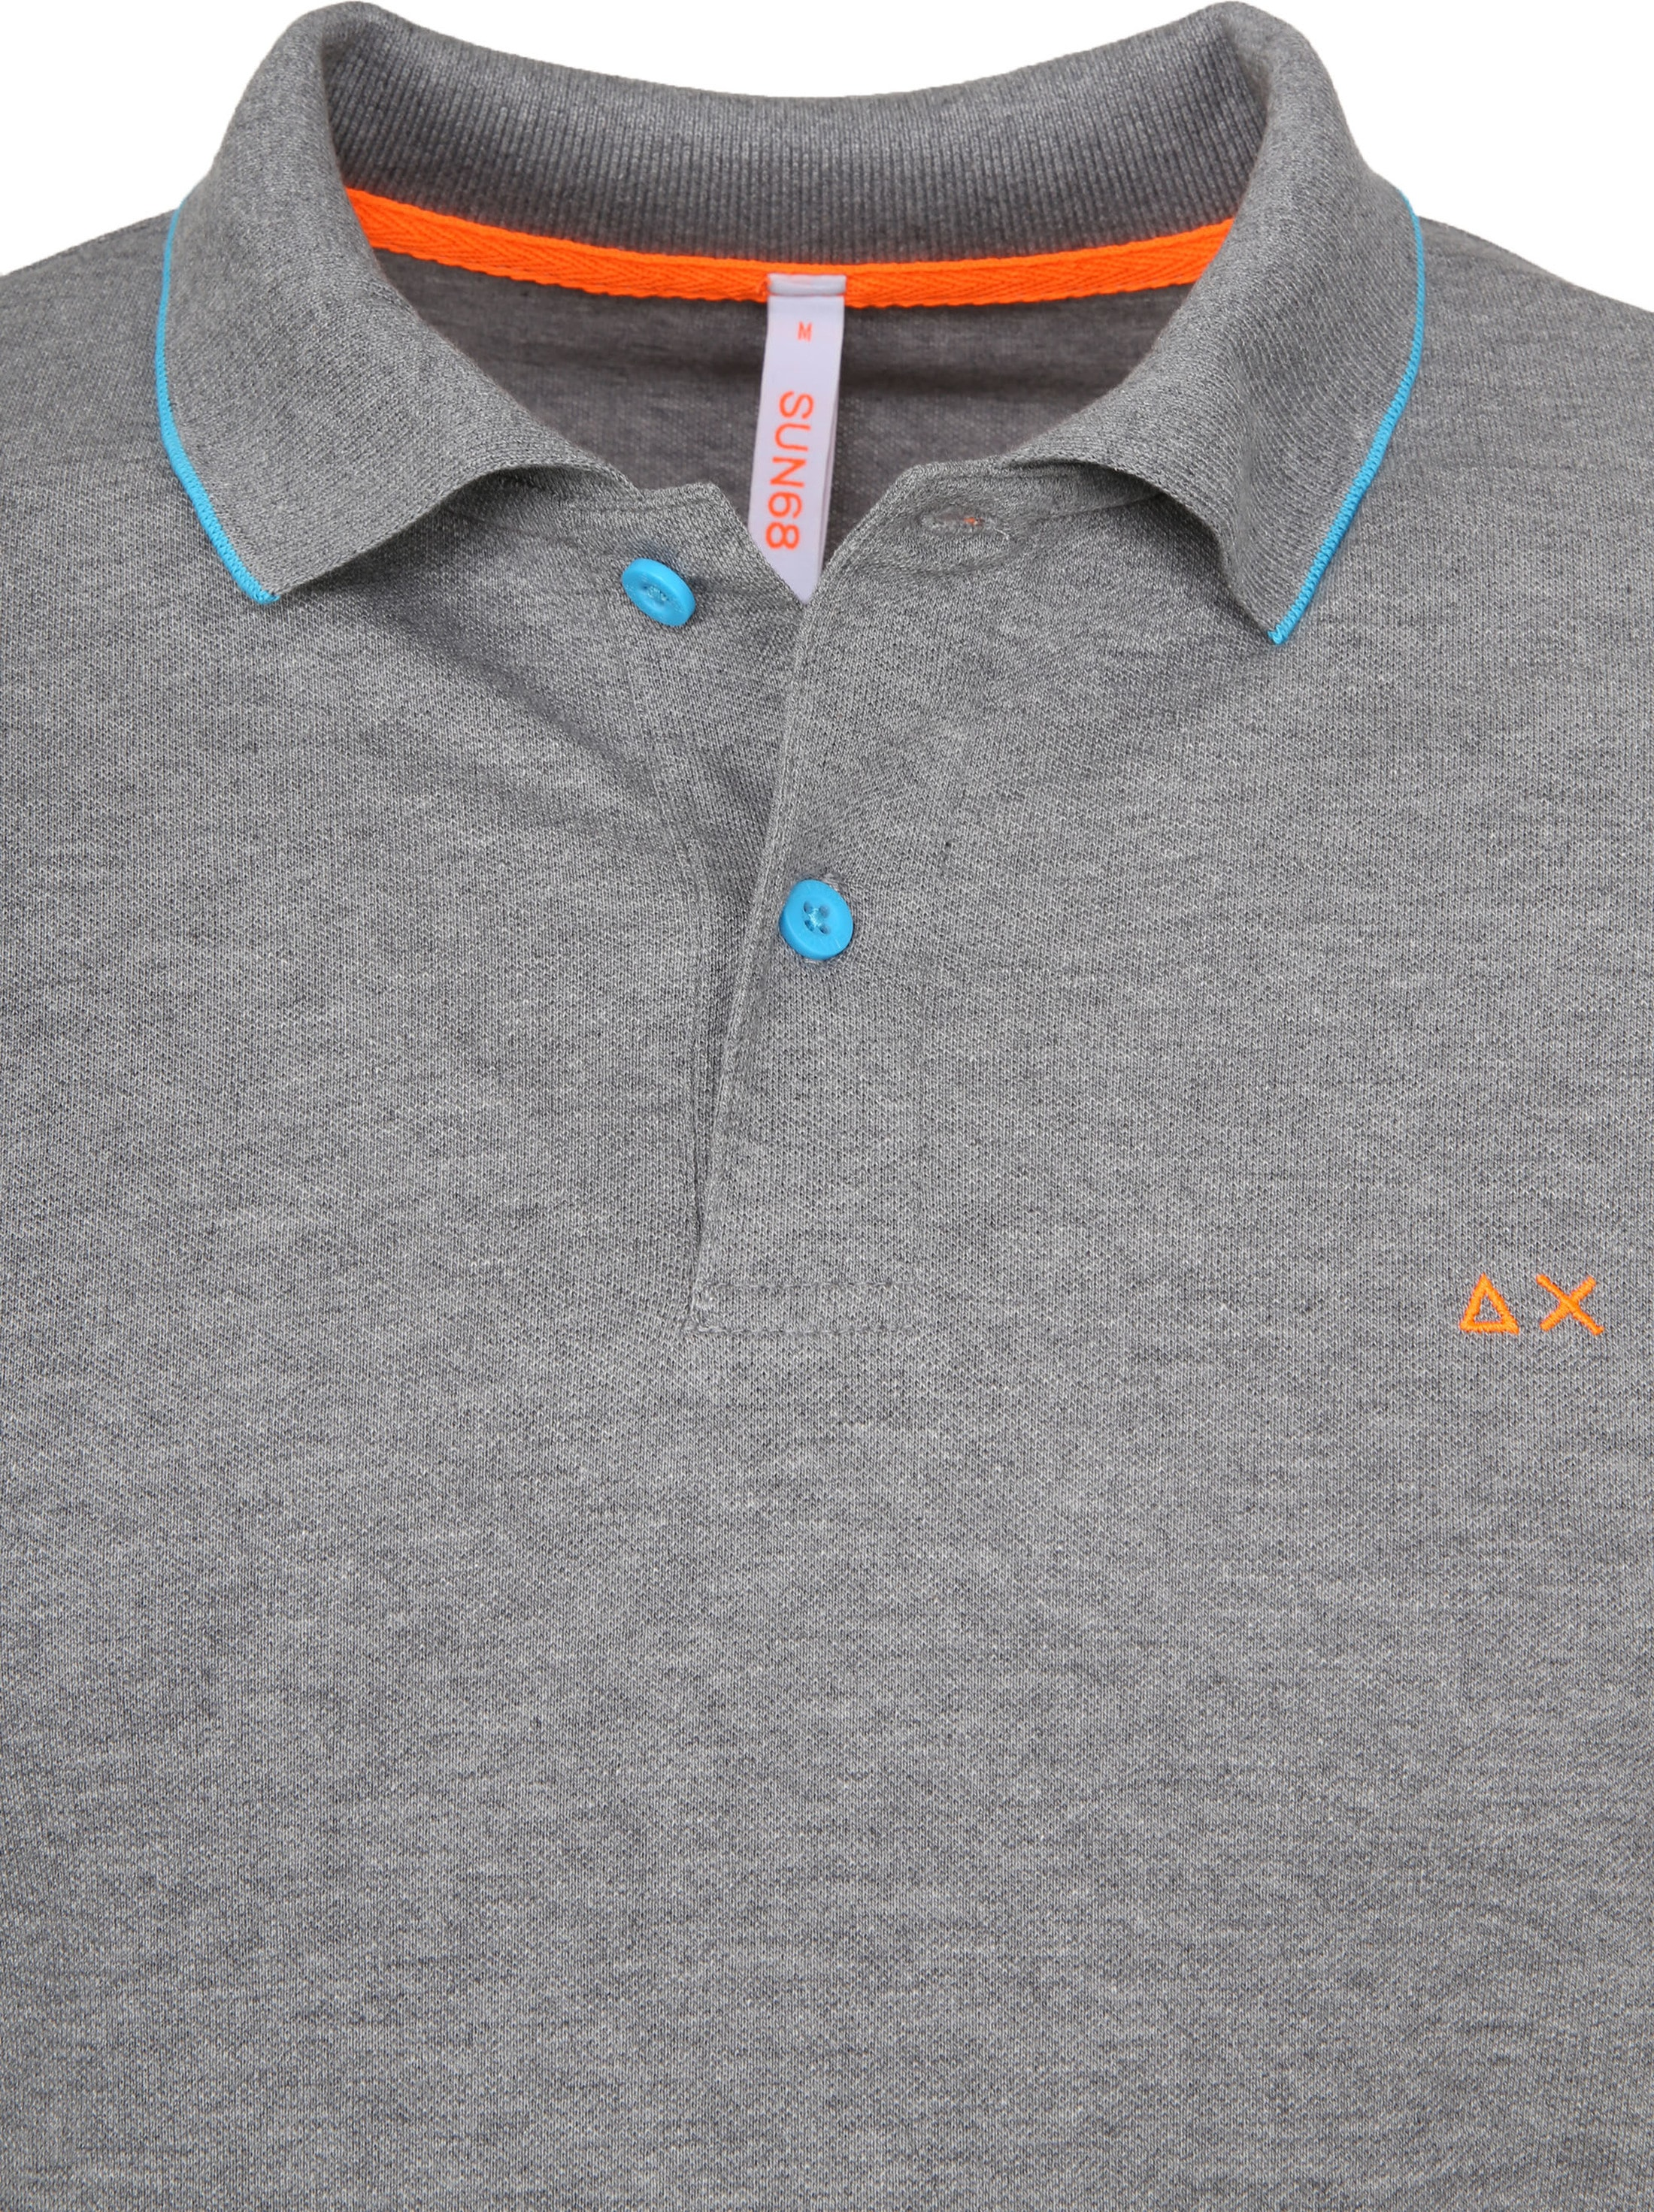 Sun68 Poloshirt Small Stripes Fluo Grey foto 1